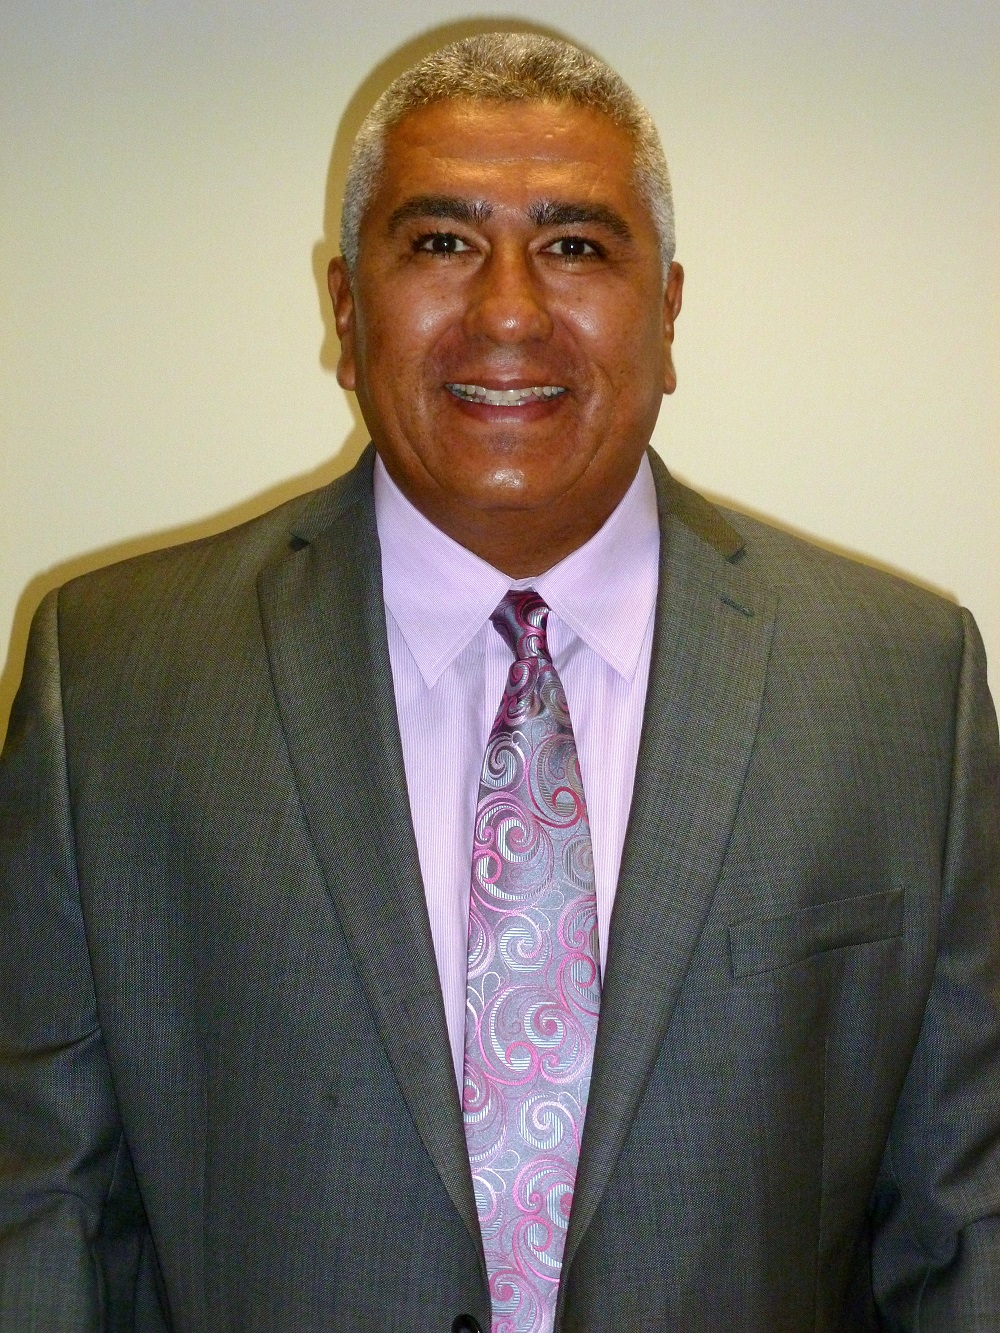 Alhambra's Governing Board hires new superintendent MarkAYslas10001